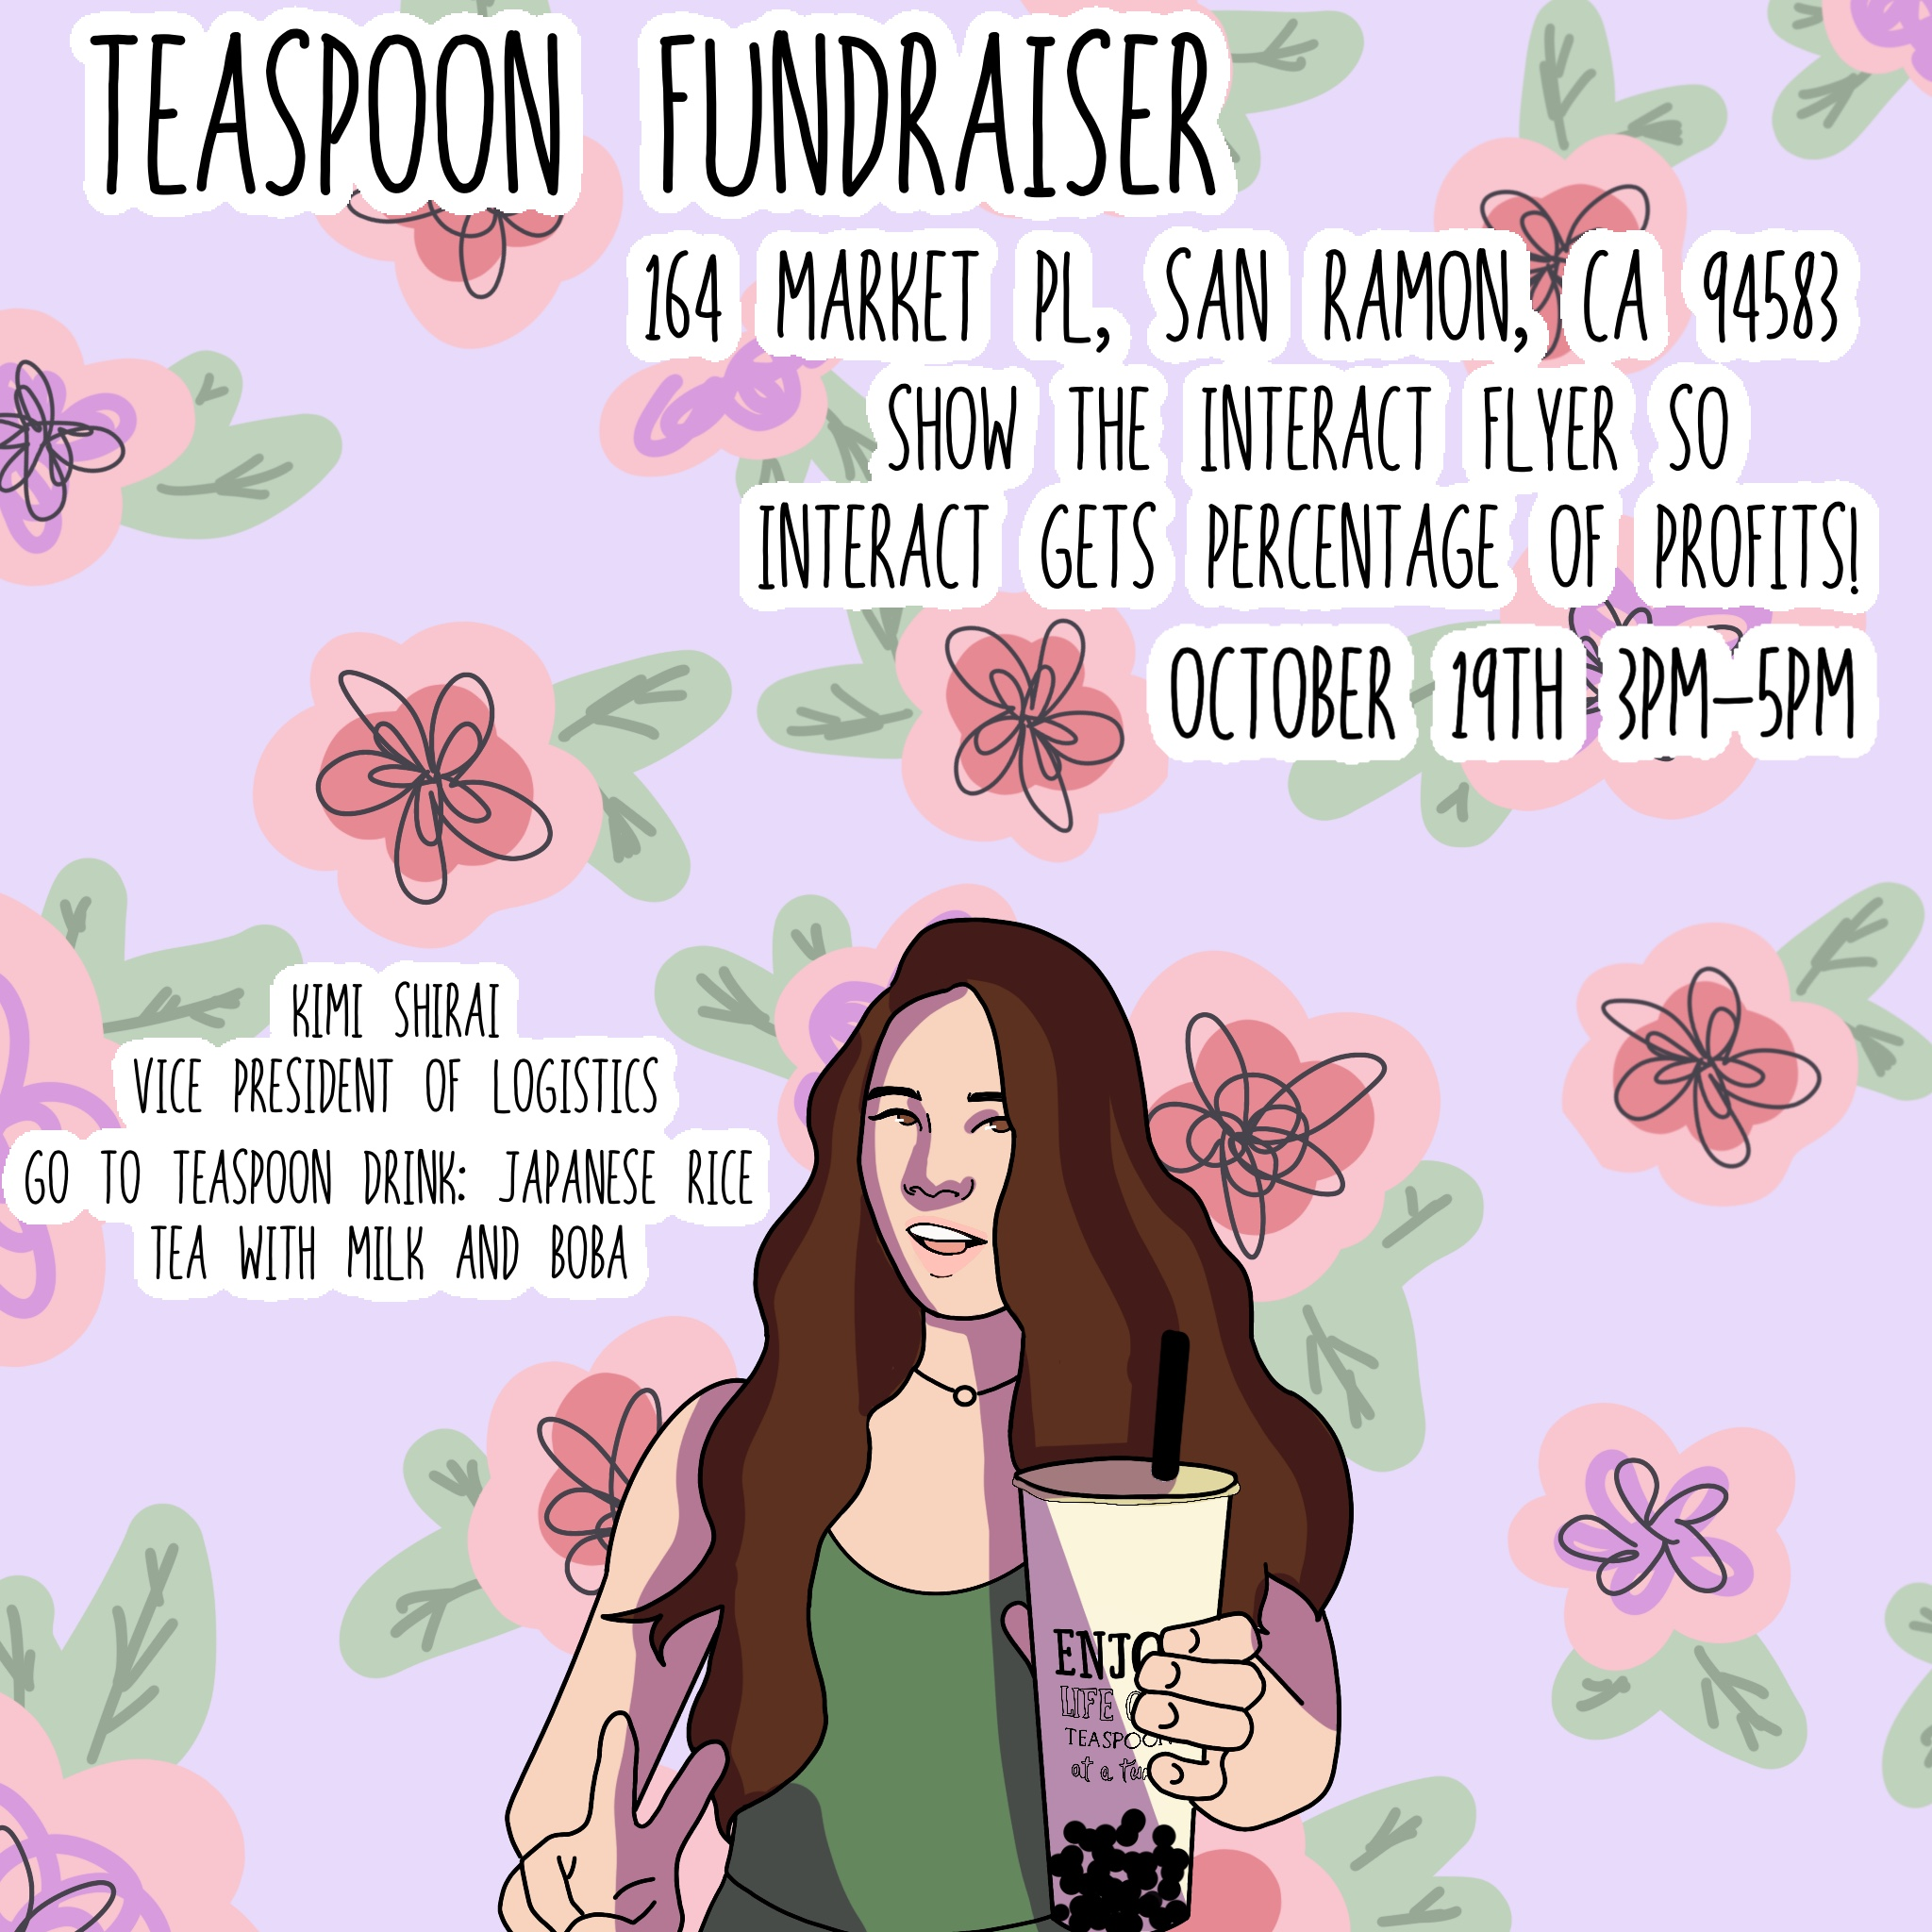 Teaspoon Fundraiser